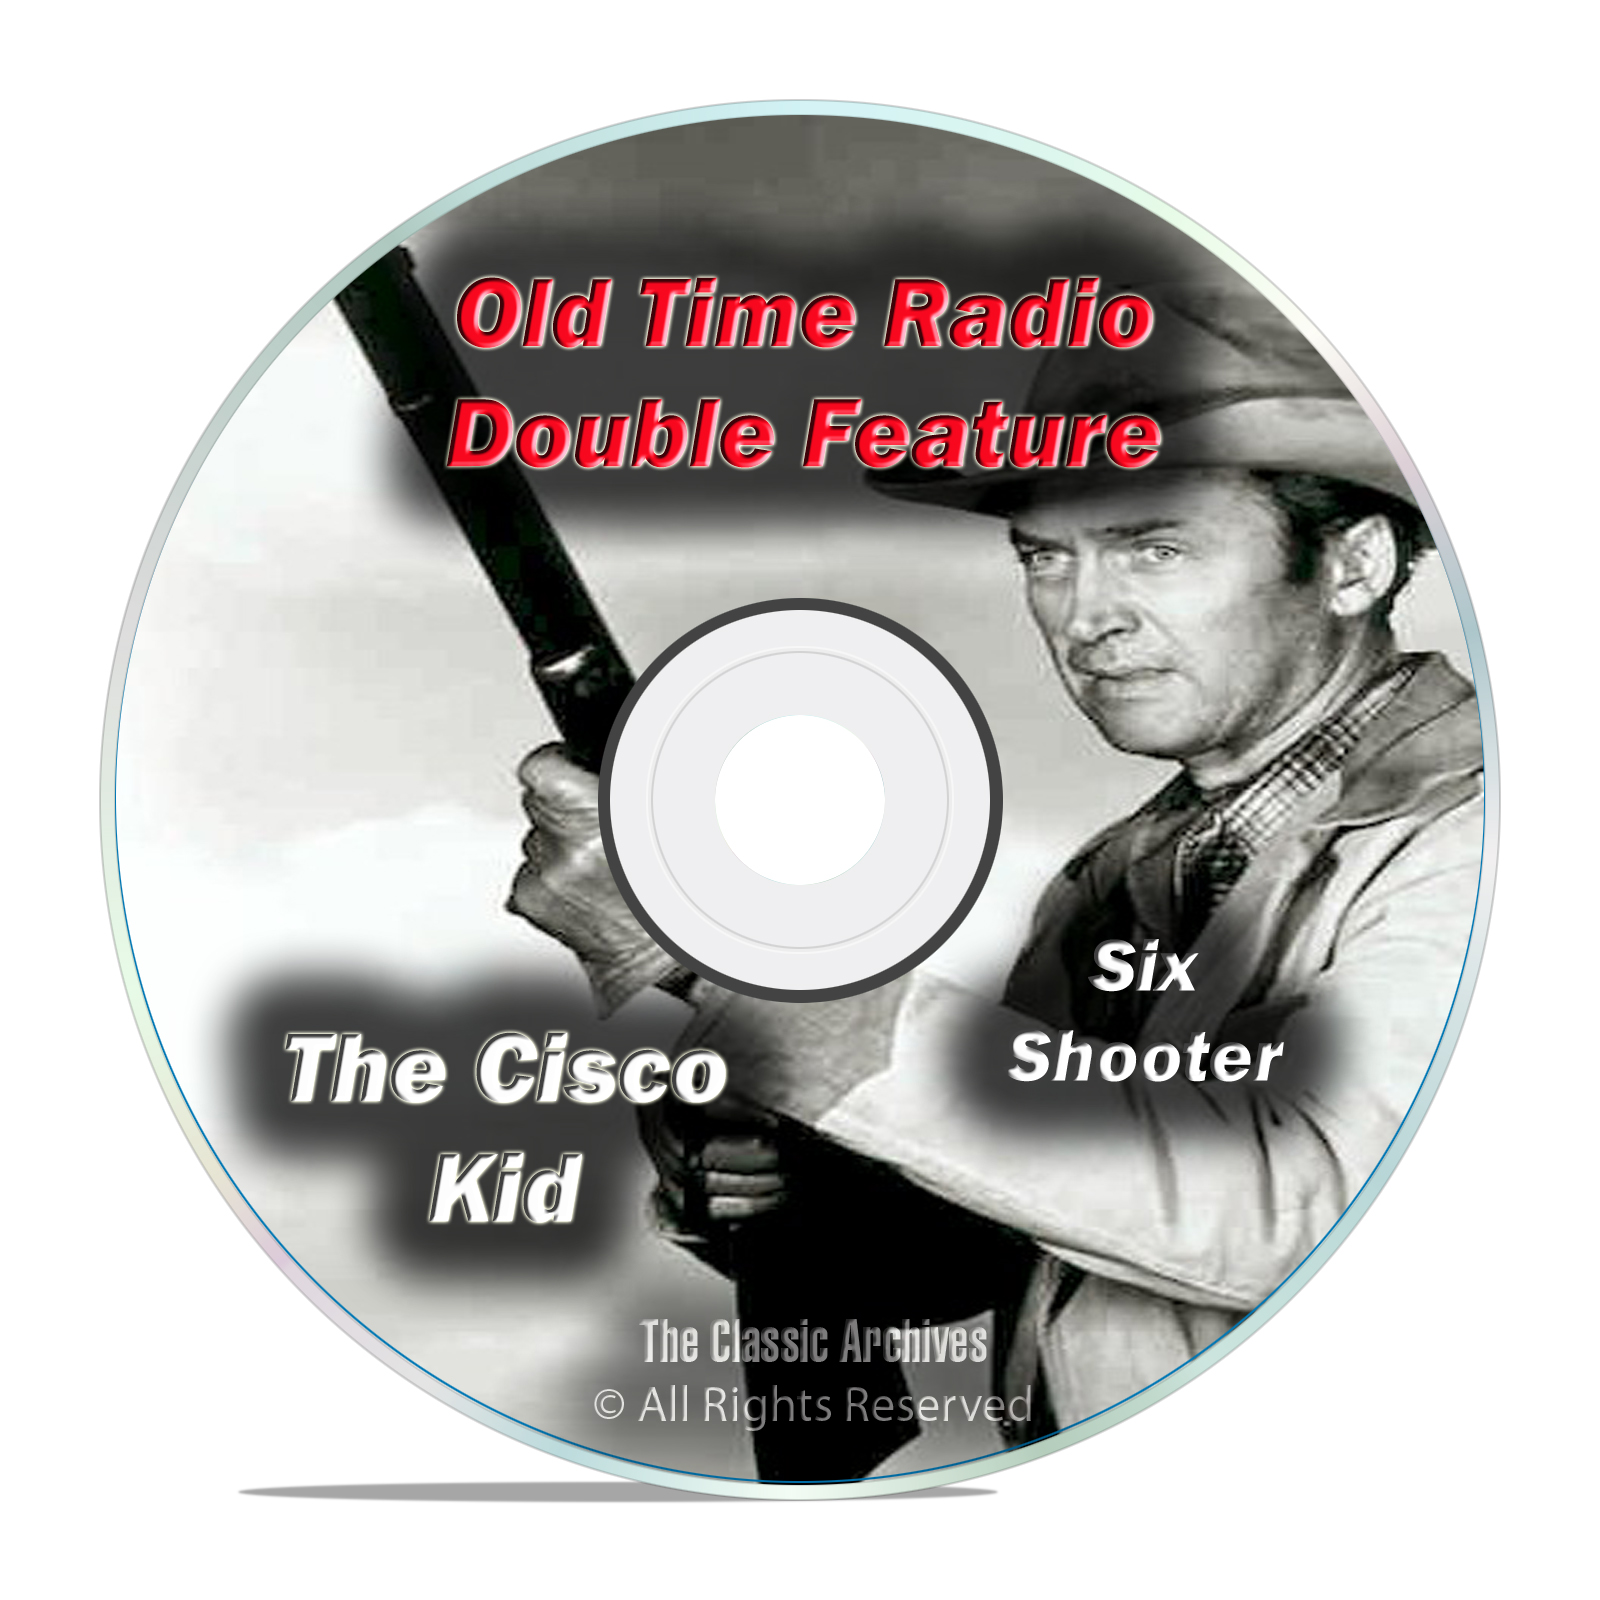 The Cisco Kid, Six Shooter All 474 Episodes Full Run Old Time Radio OTR DVD